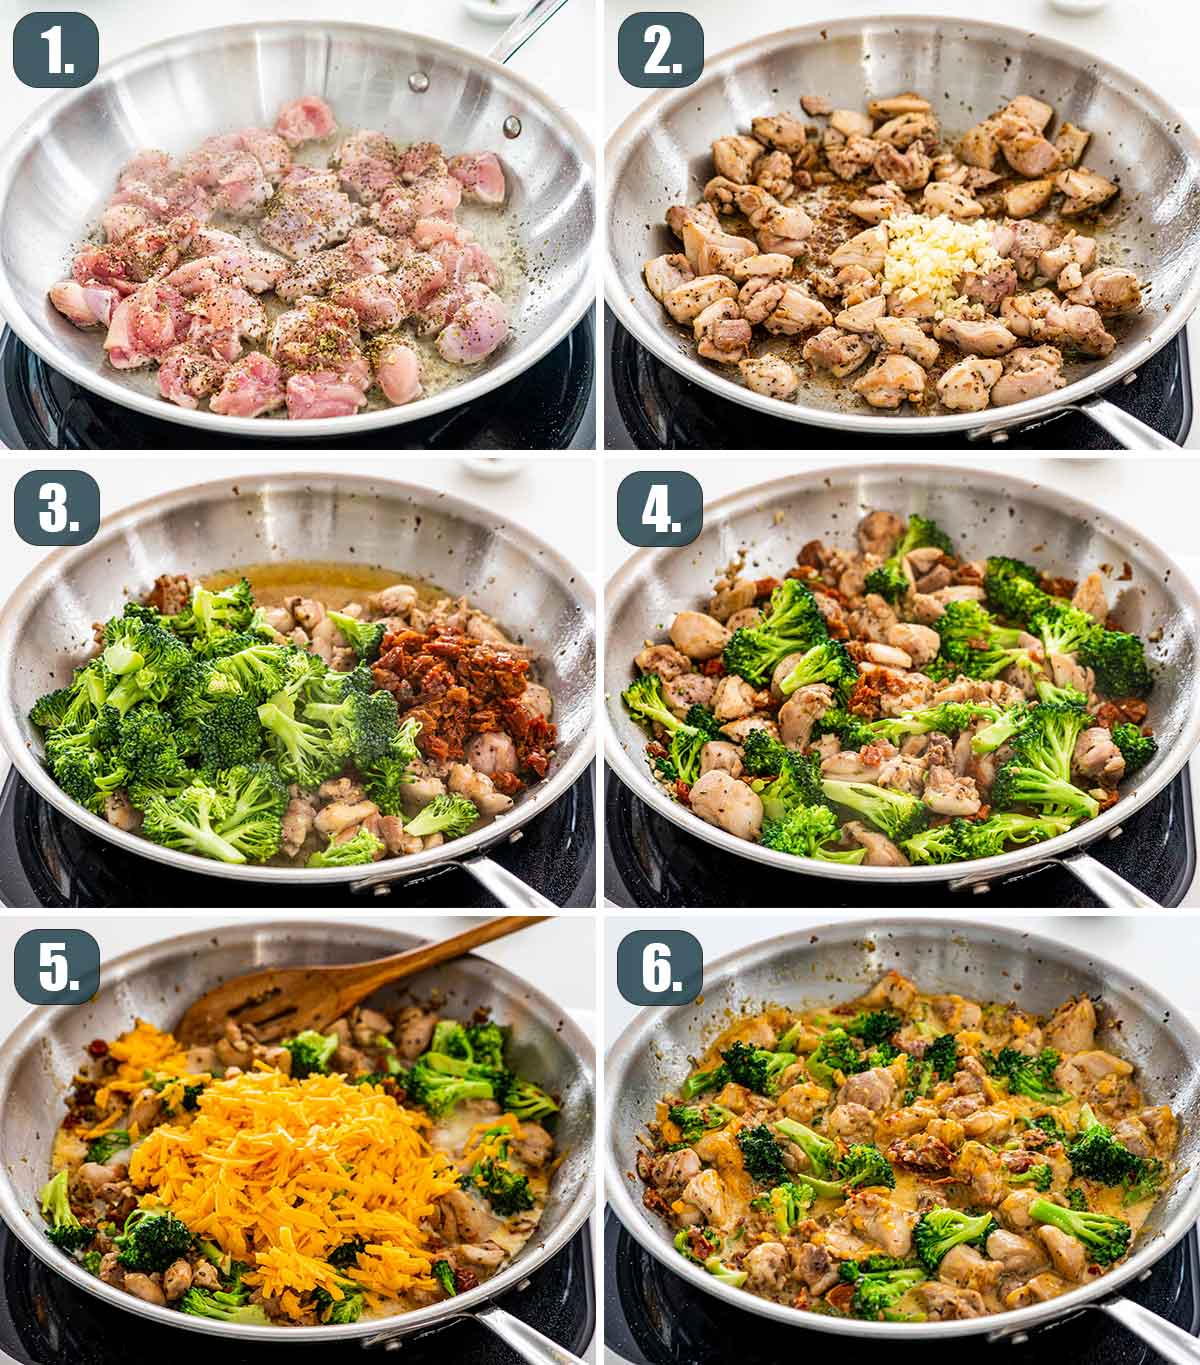 detailed process shots showing how to make chicken broccoli in 15 minutes.